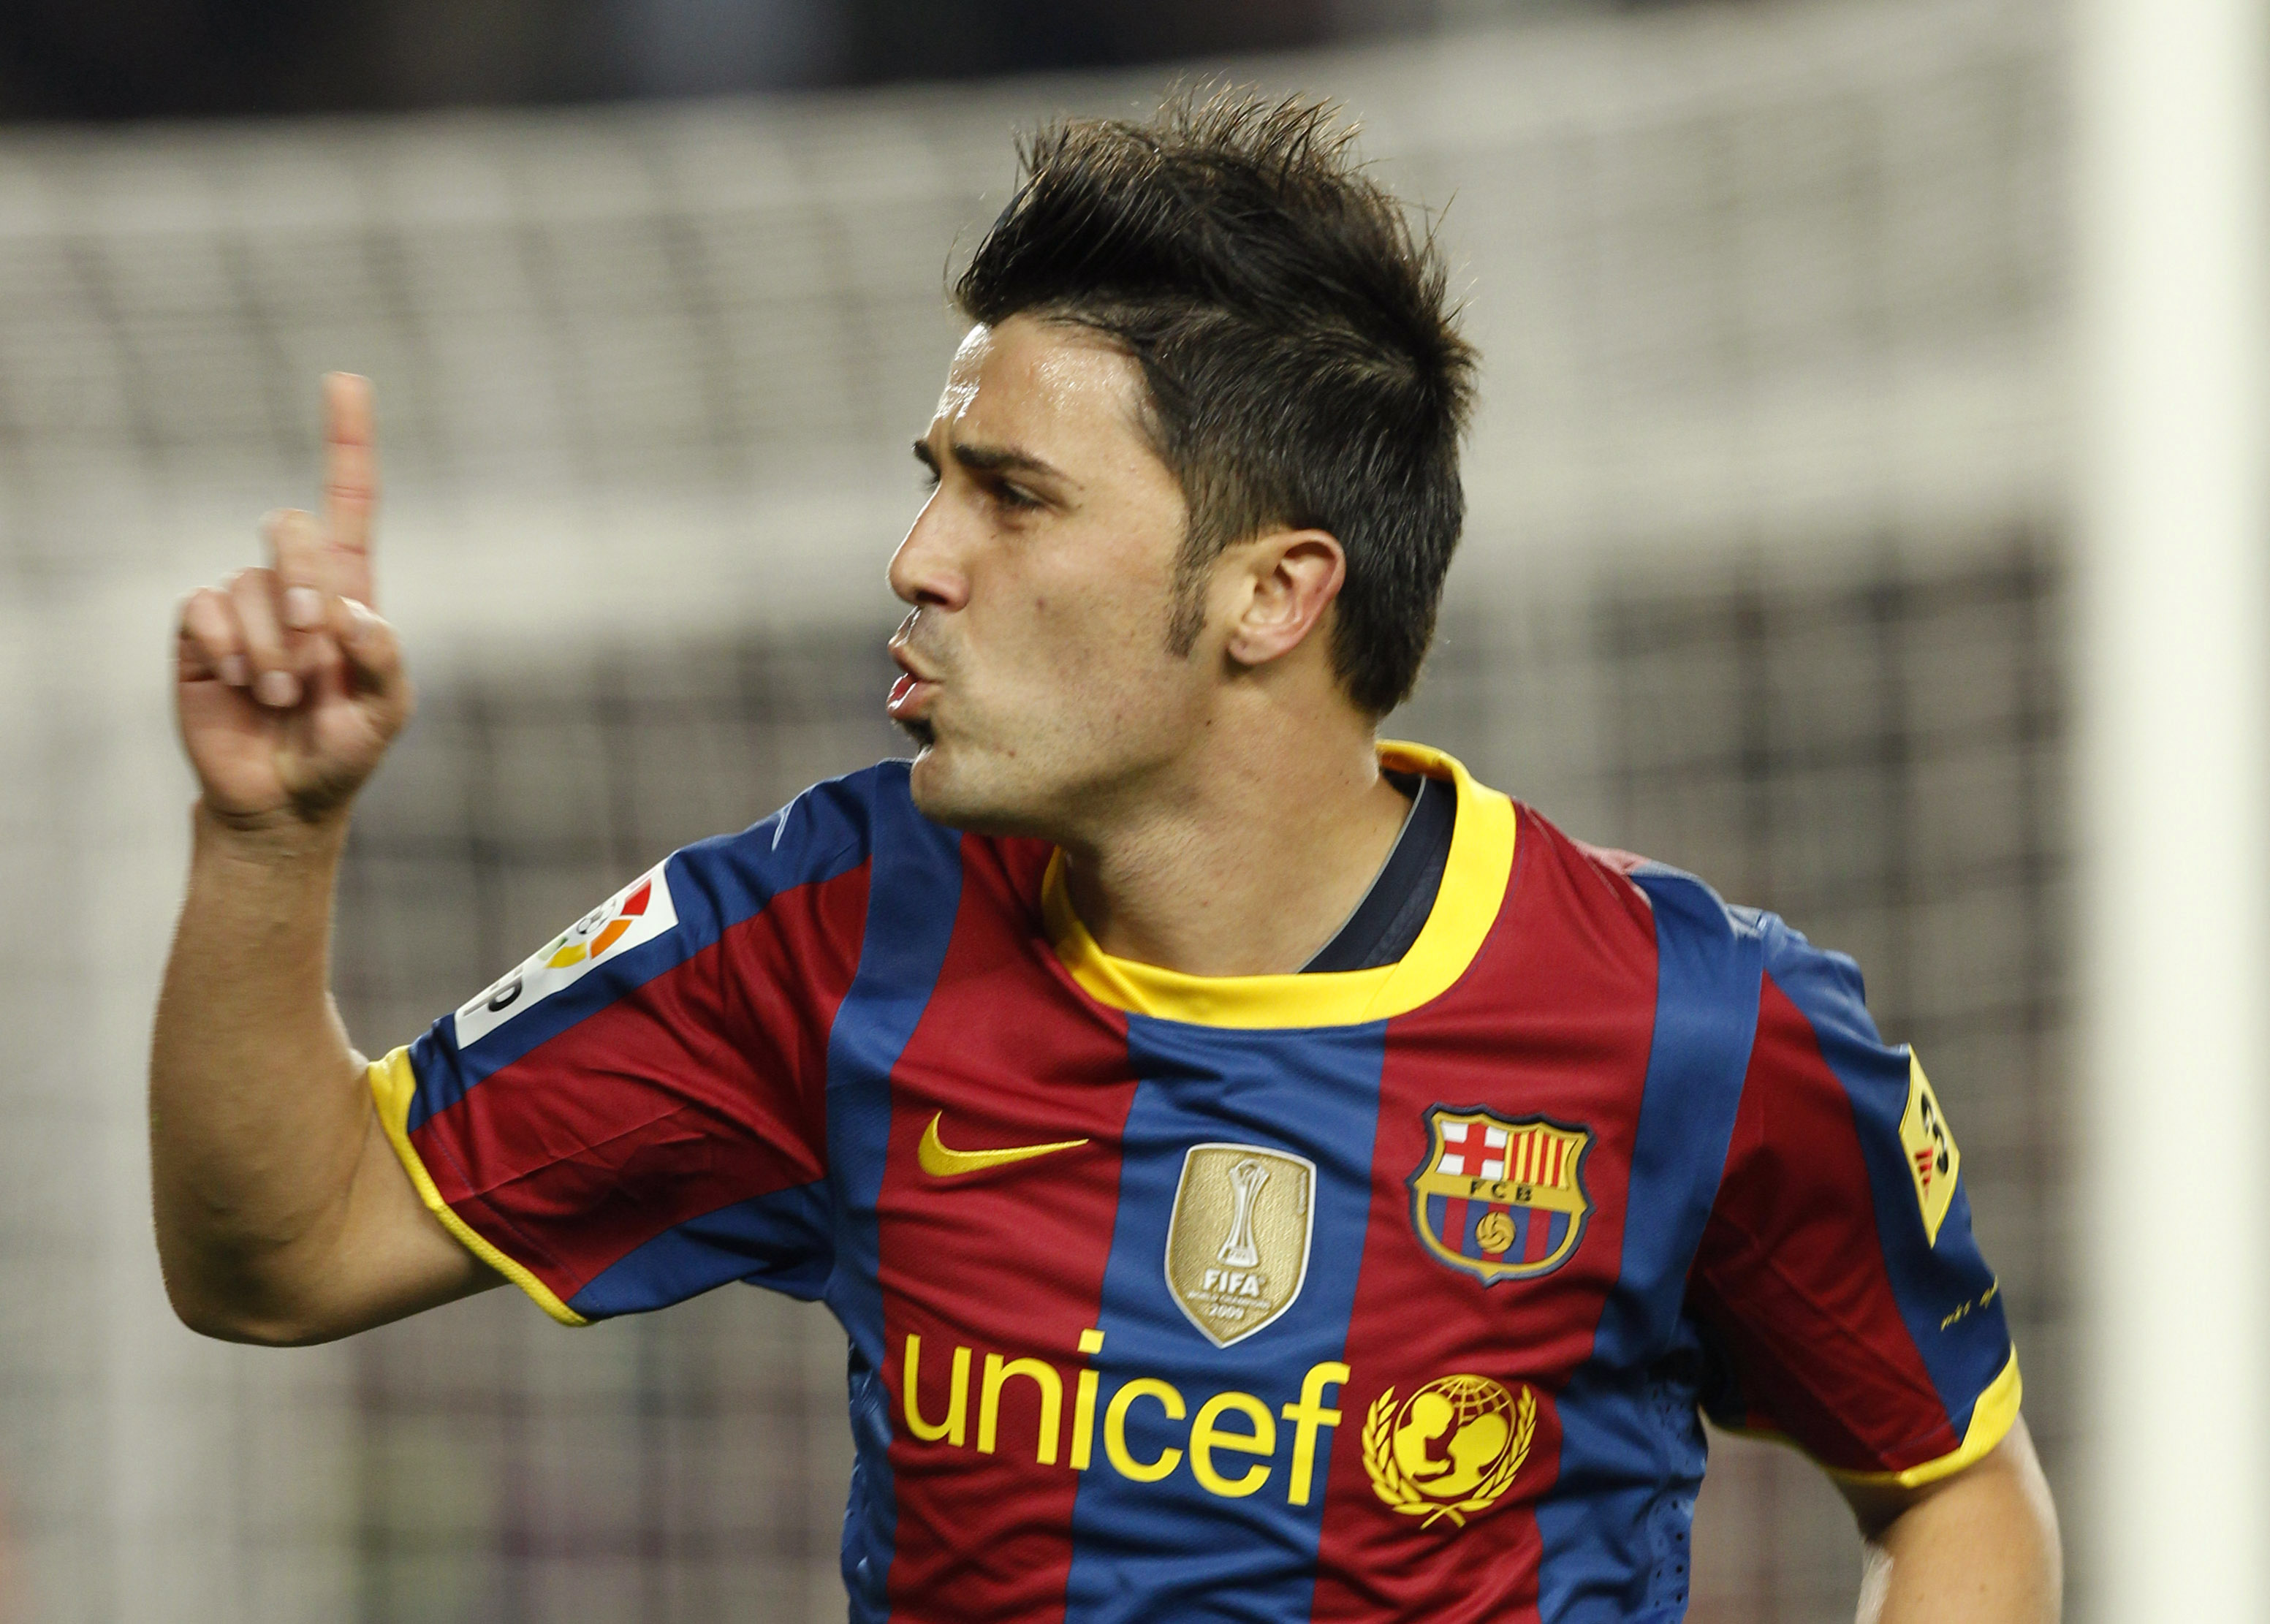 David villa 2013 wallpaper hd